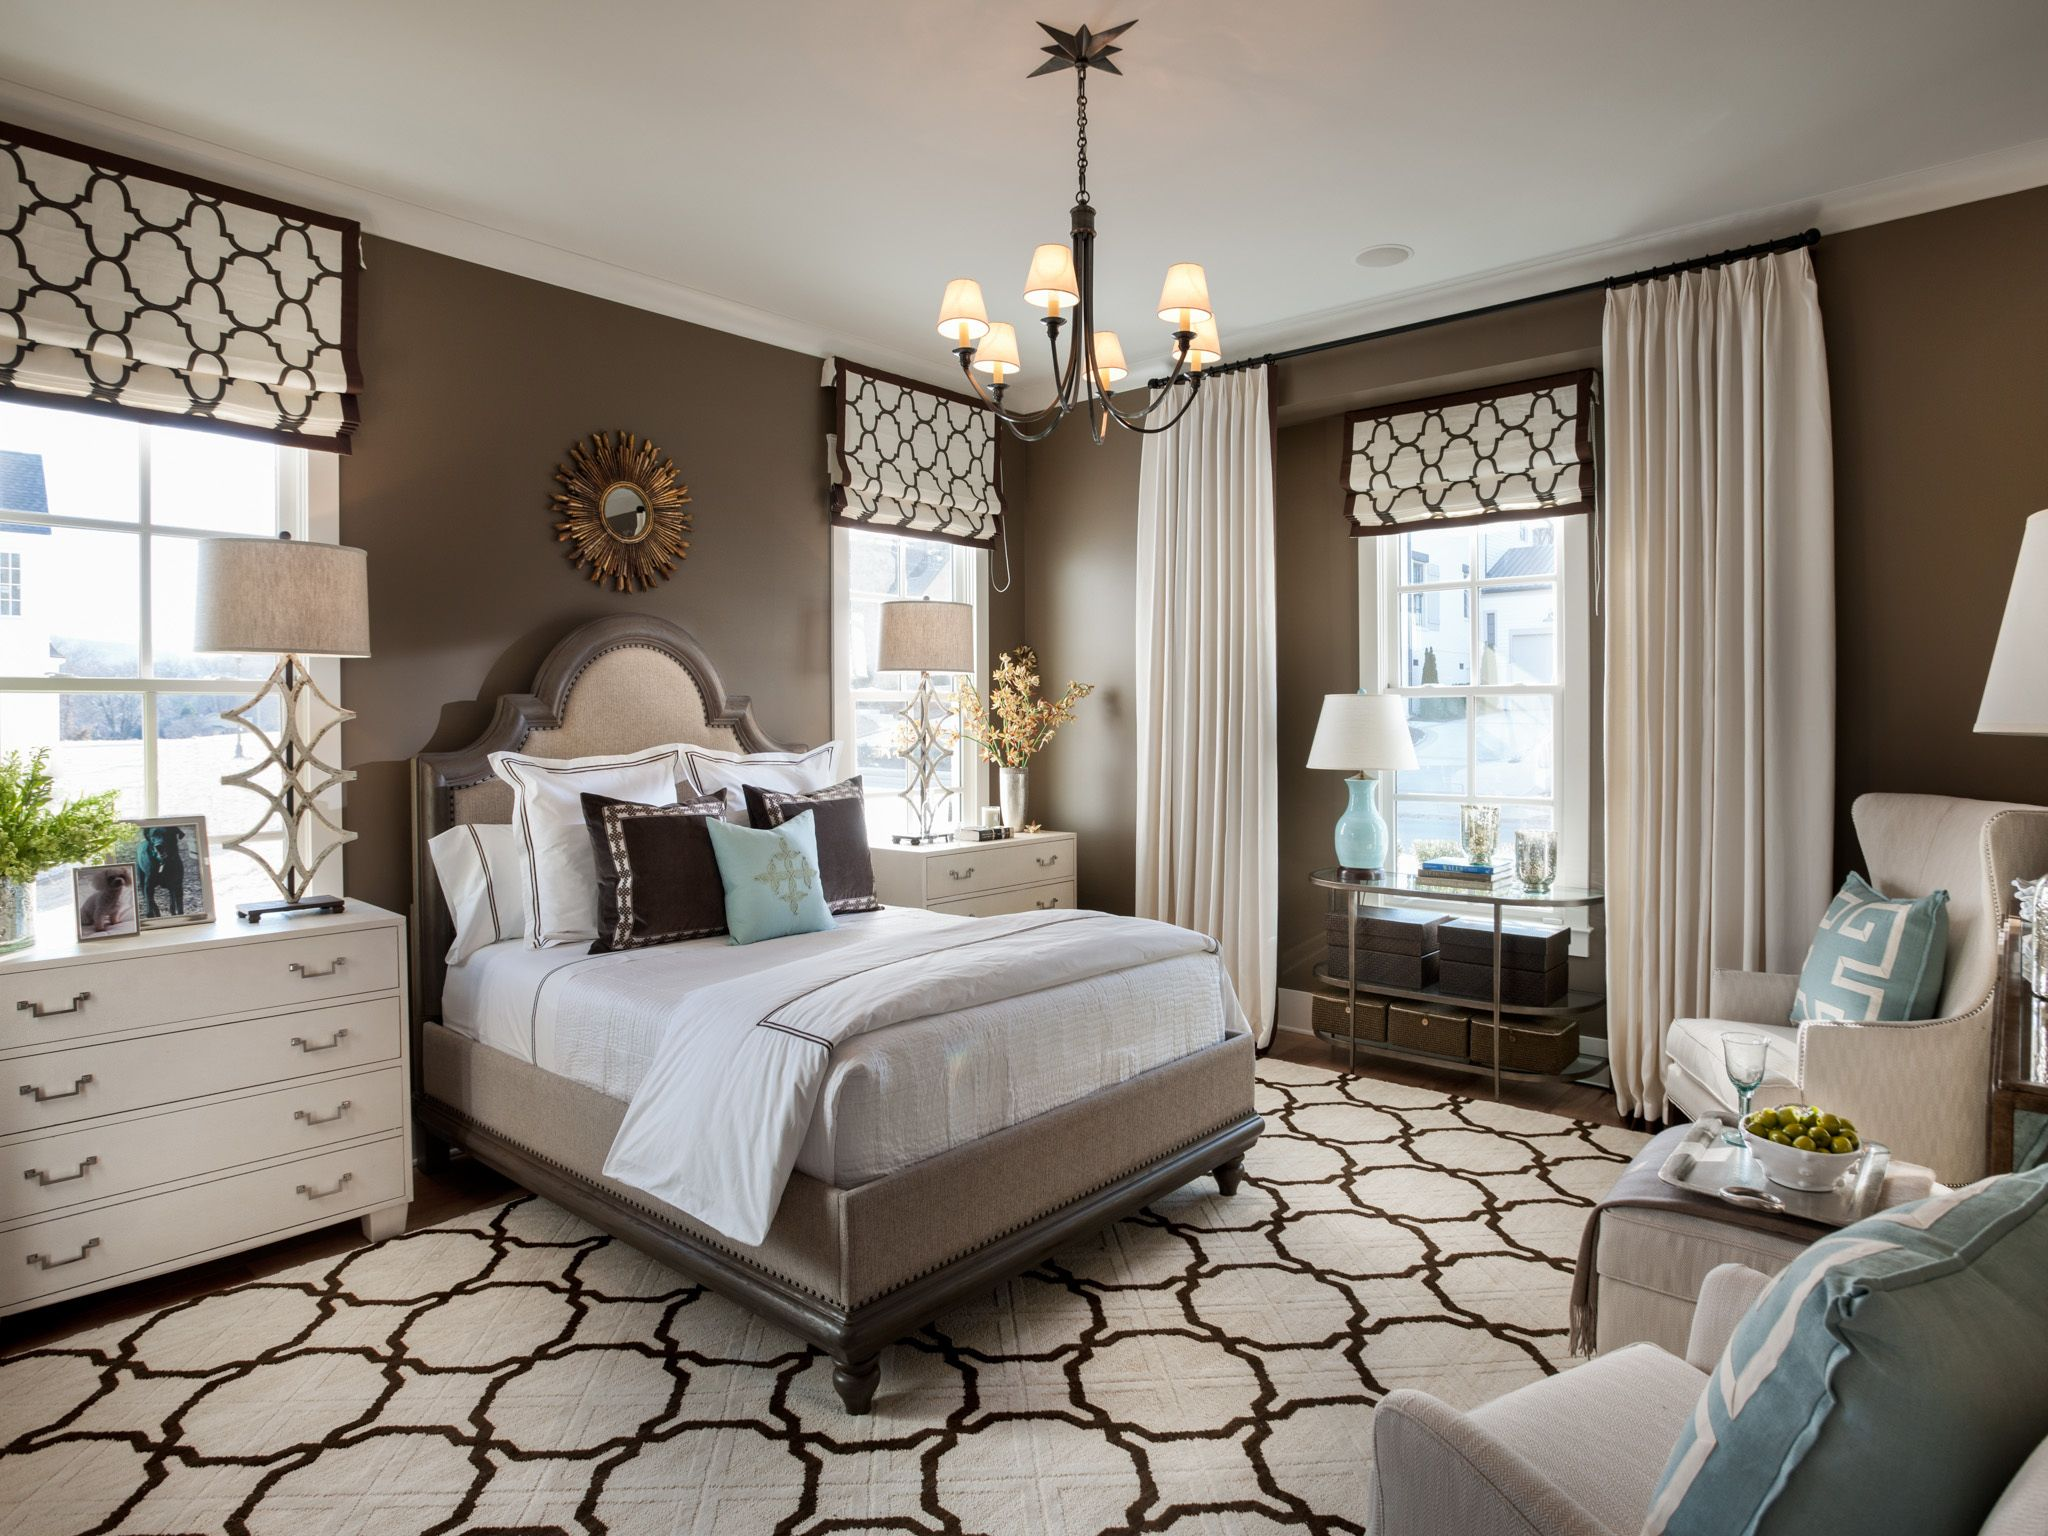 Master Bedroom Pictures From Hgtv Smart Home 2014 01 H